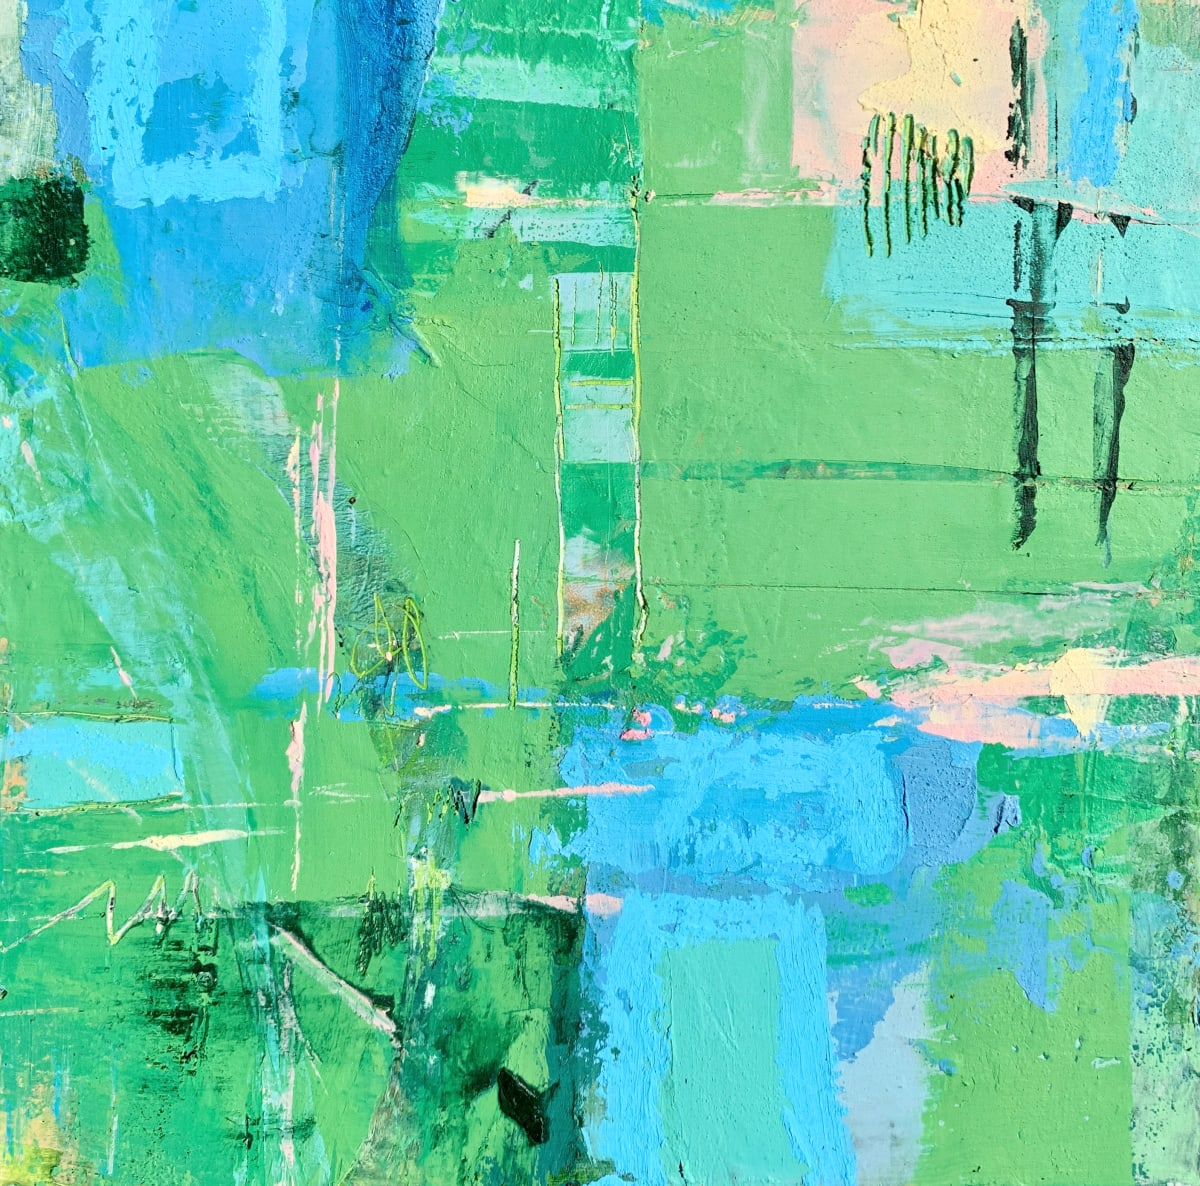 Greenery 2 by Sally Hootnick  Image: abstract landscape in oil and cold wax on wood panel